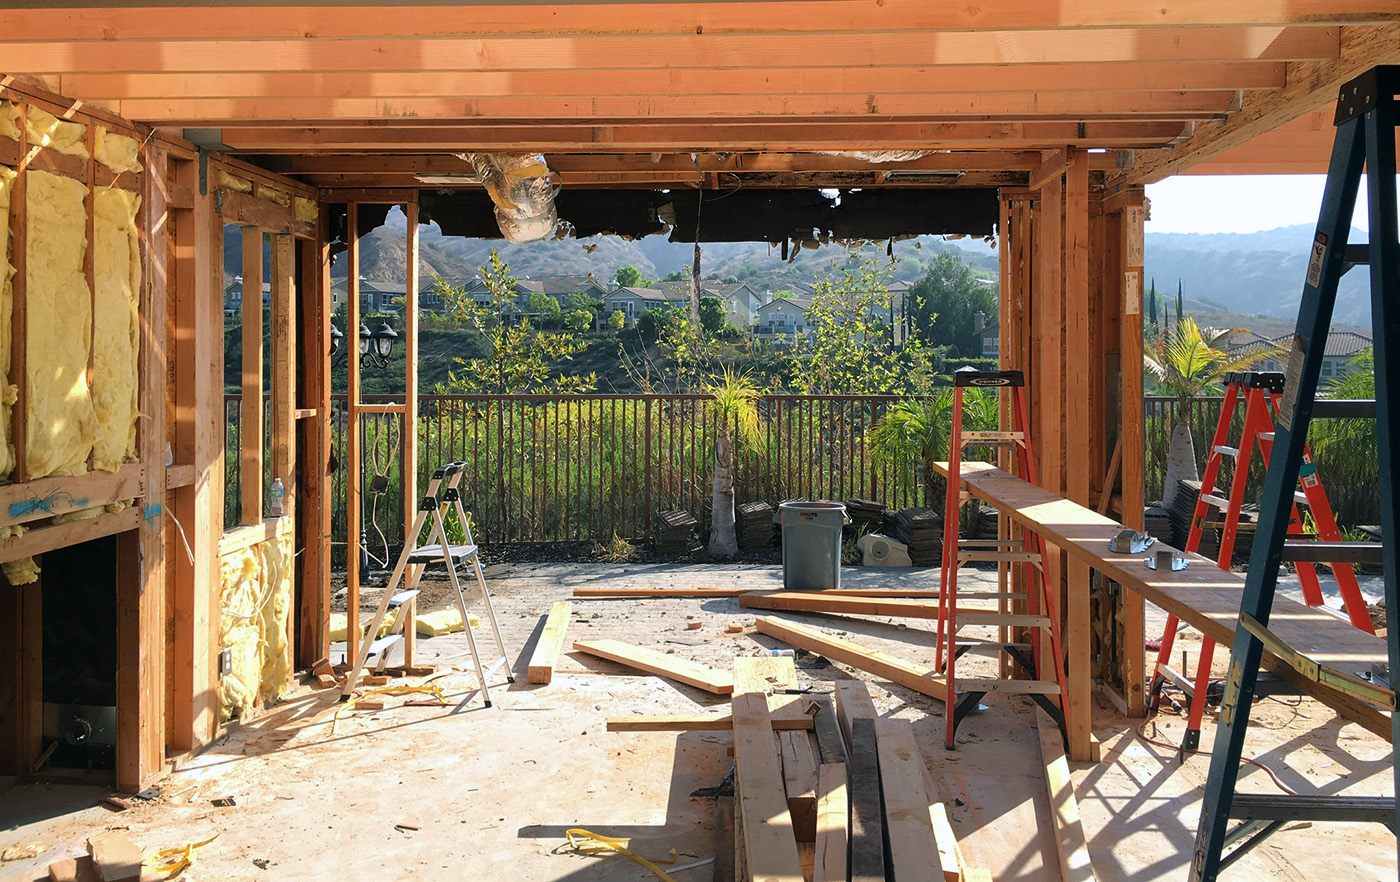 Demolition Services Orange County